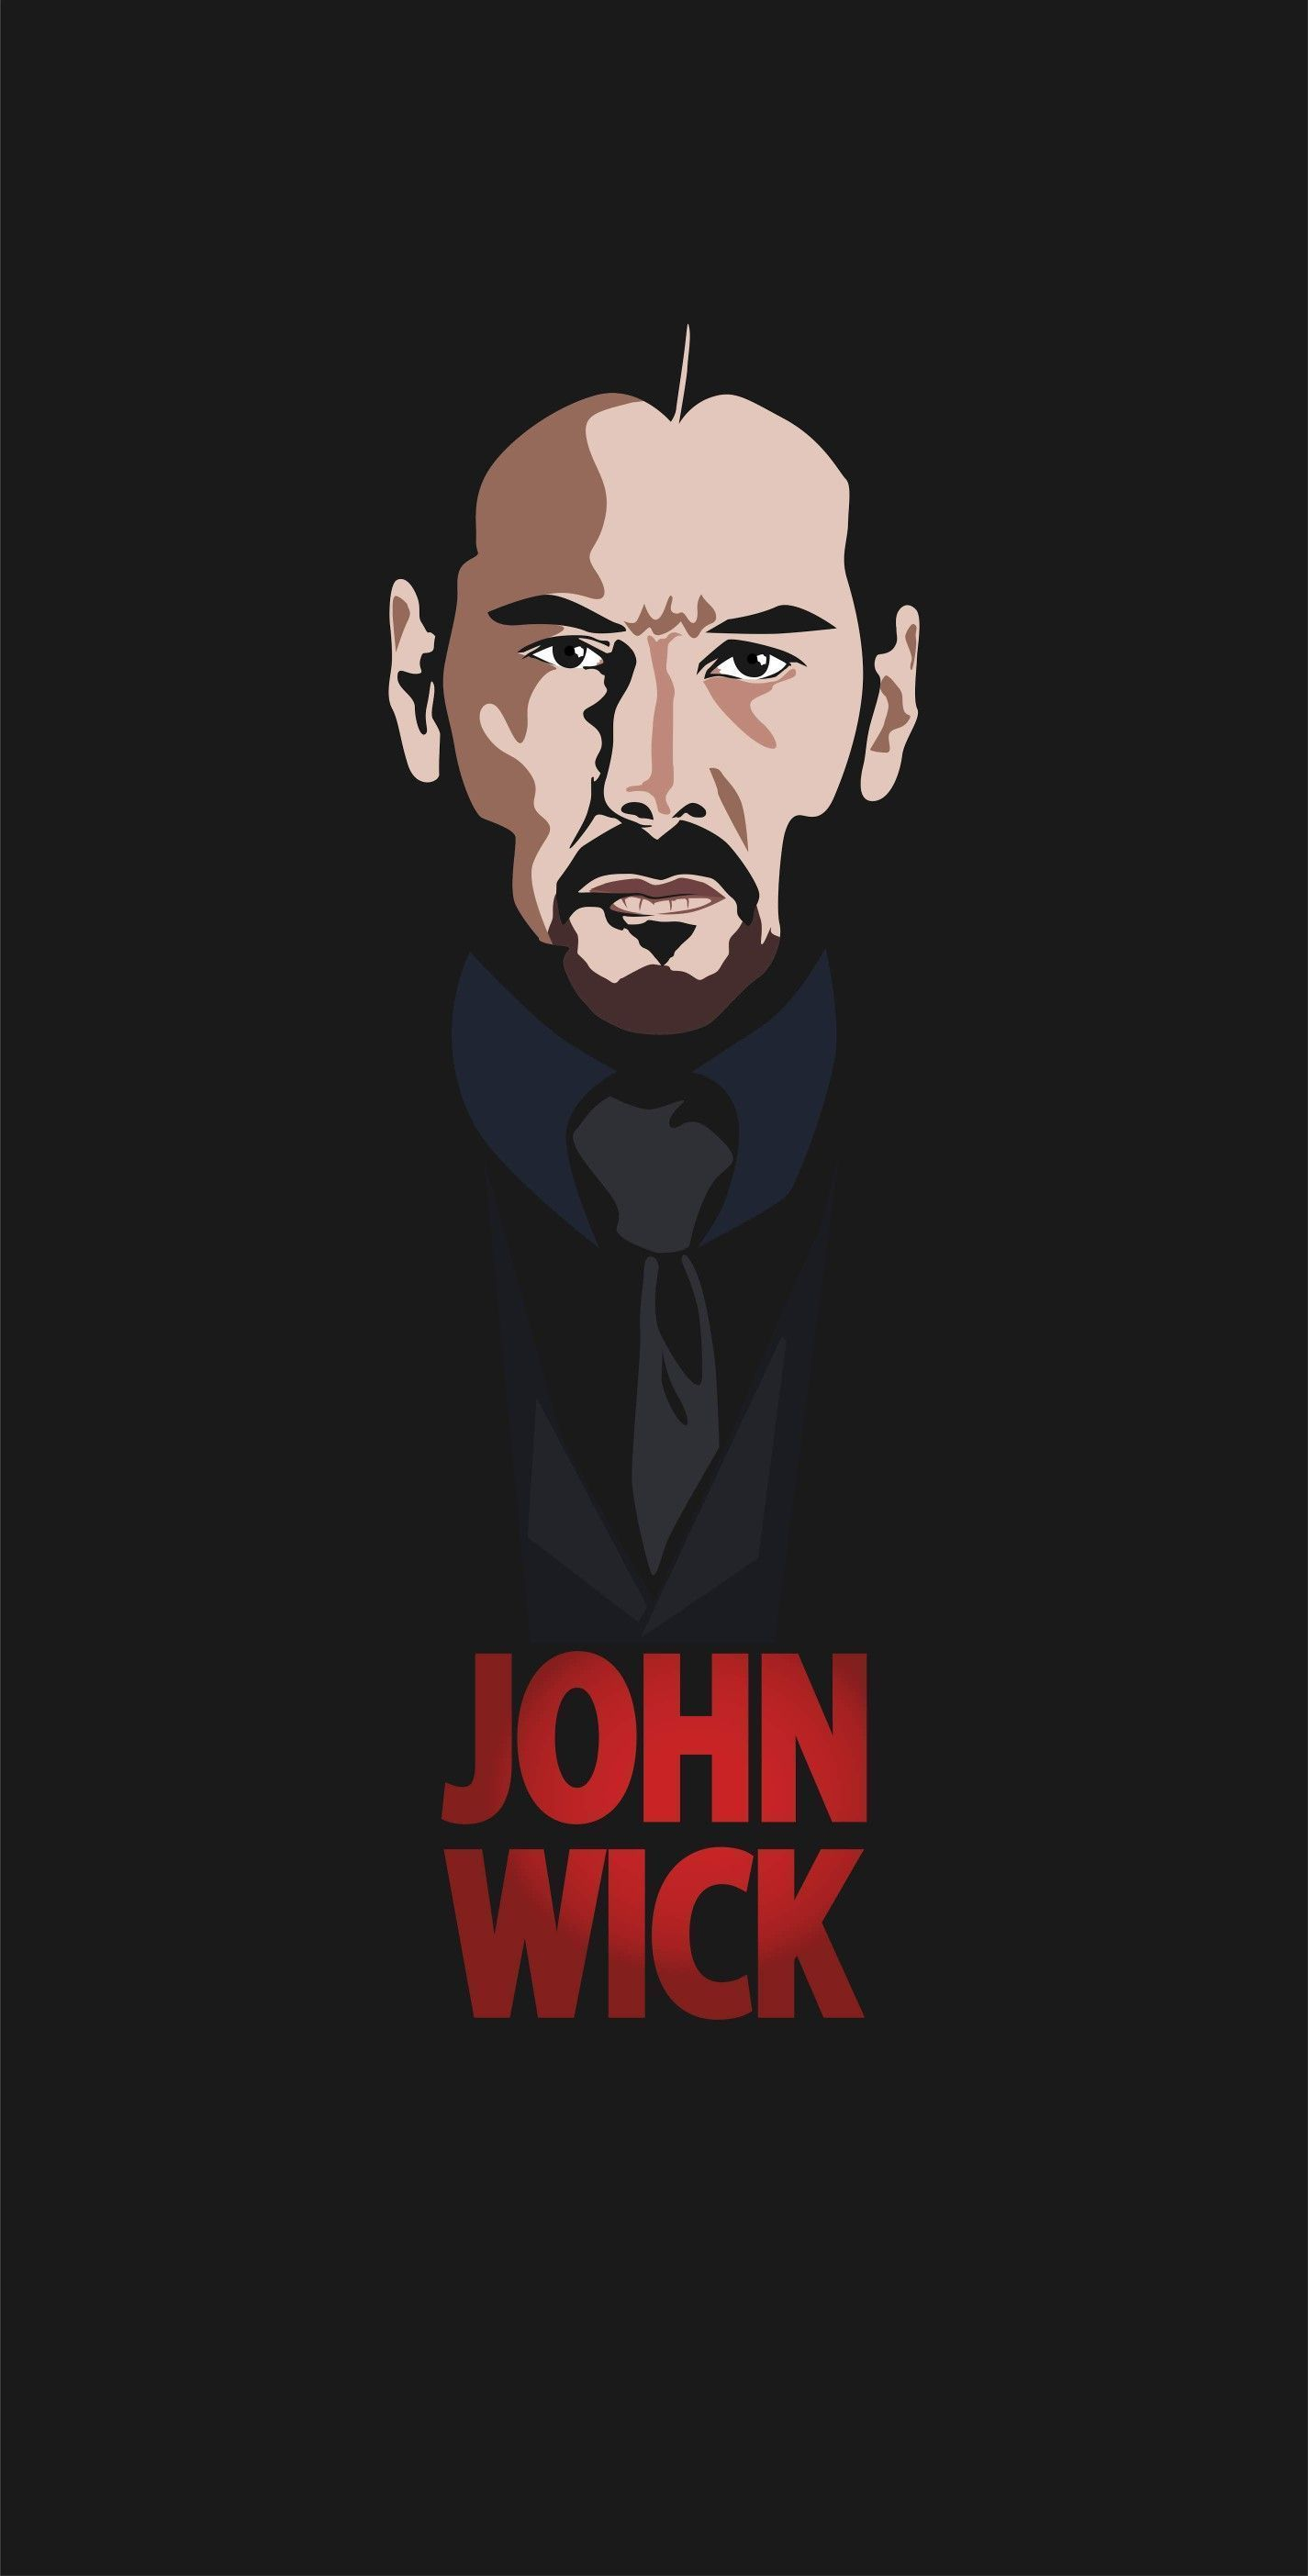 Samsung Wallpaper Quotes Hintergrundbild Tapete Samsung Wallpaper Marvel Hintergrundbild Tapete In 2020 Samsung Wallpaper John Wick Movie John Wick Hd